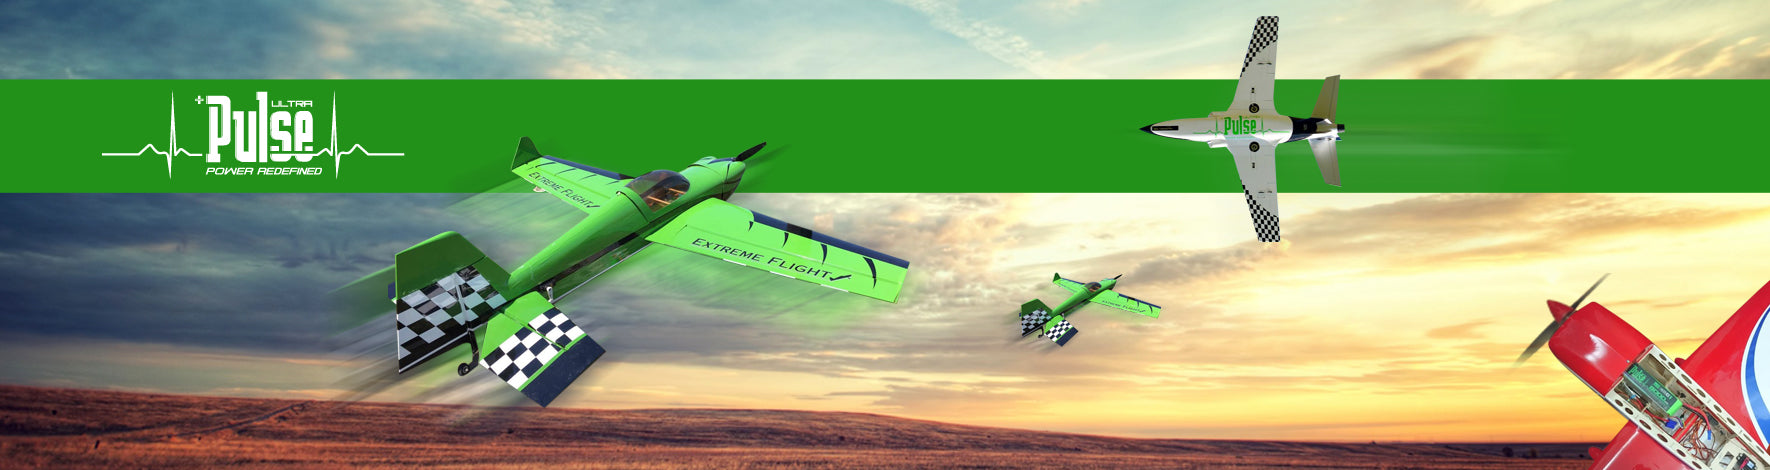 Pulsebattery - RC Lipos, RC Heli Batteries and Accessories